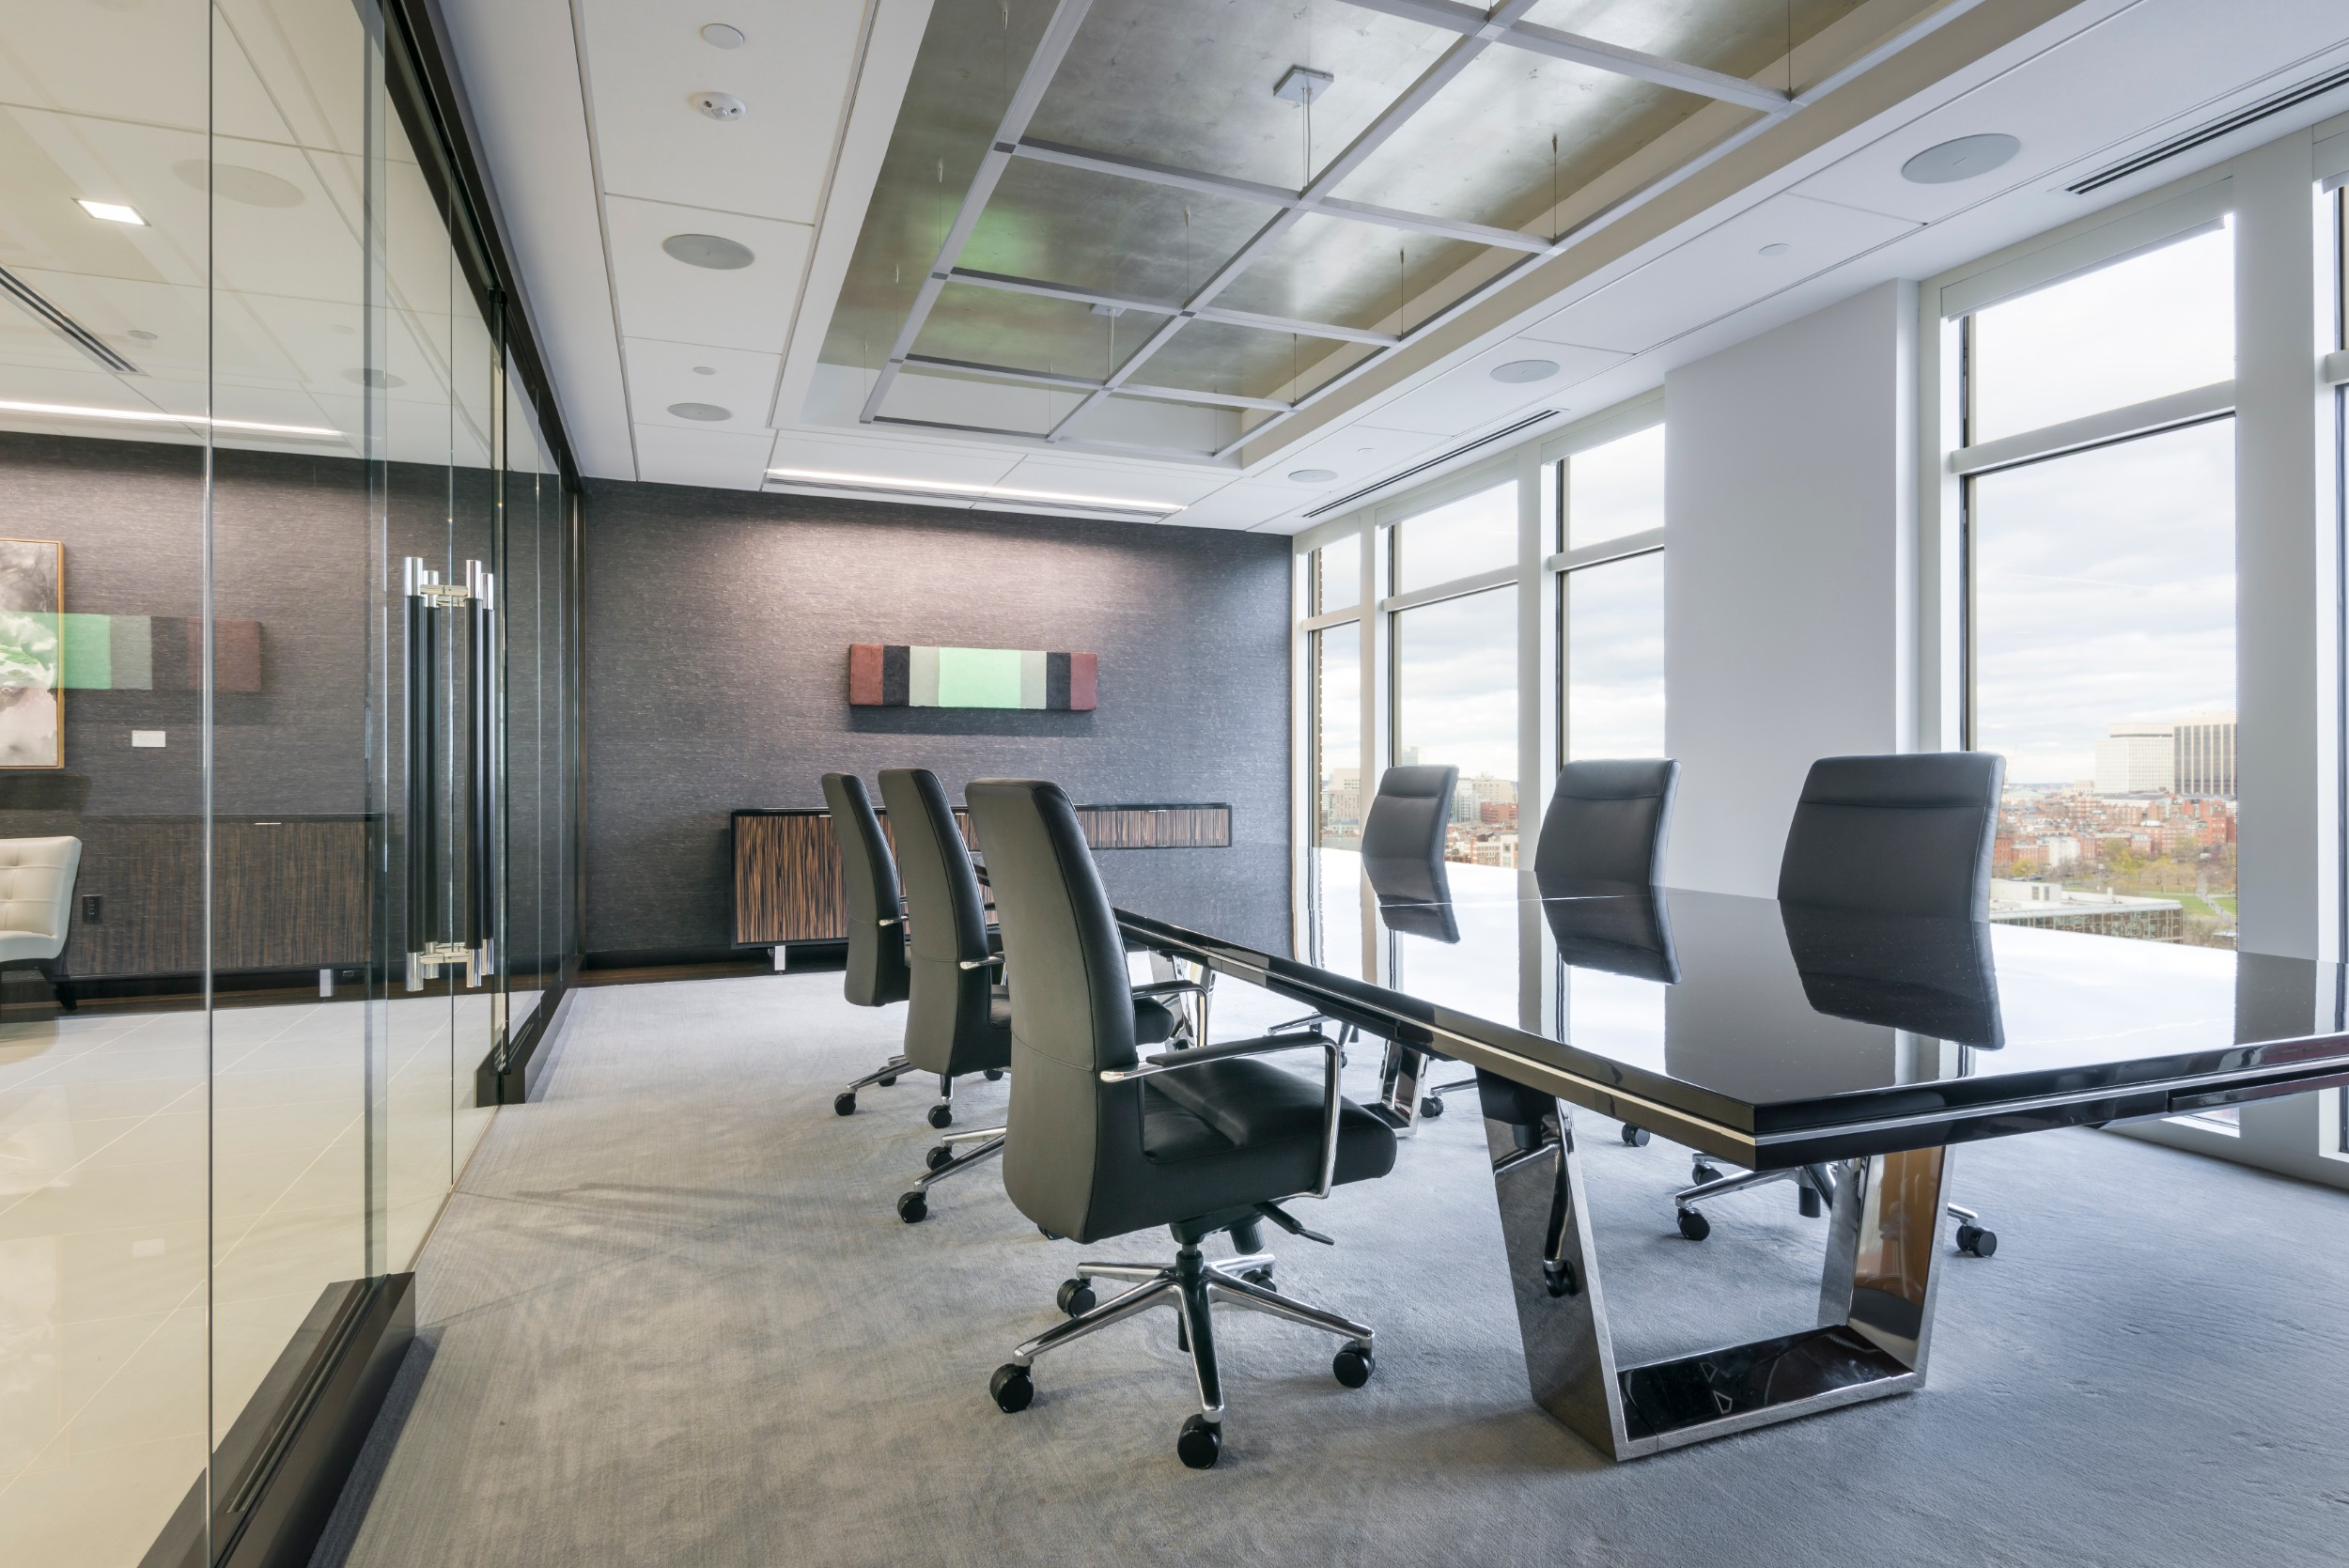 Corderman_Construction_Martignetti_Companies_Interior_Office_Buildout_Boardroom_Side_Angle.jpg